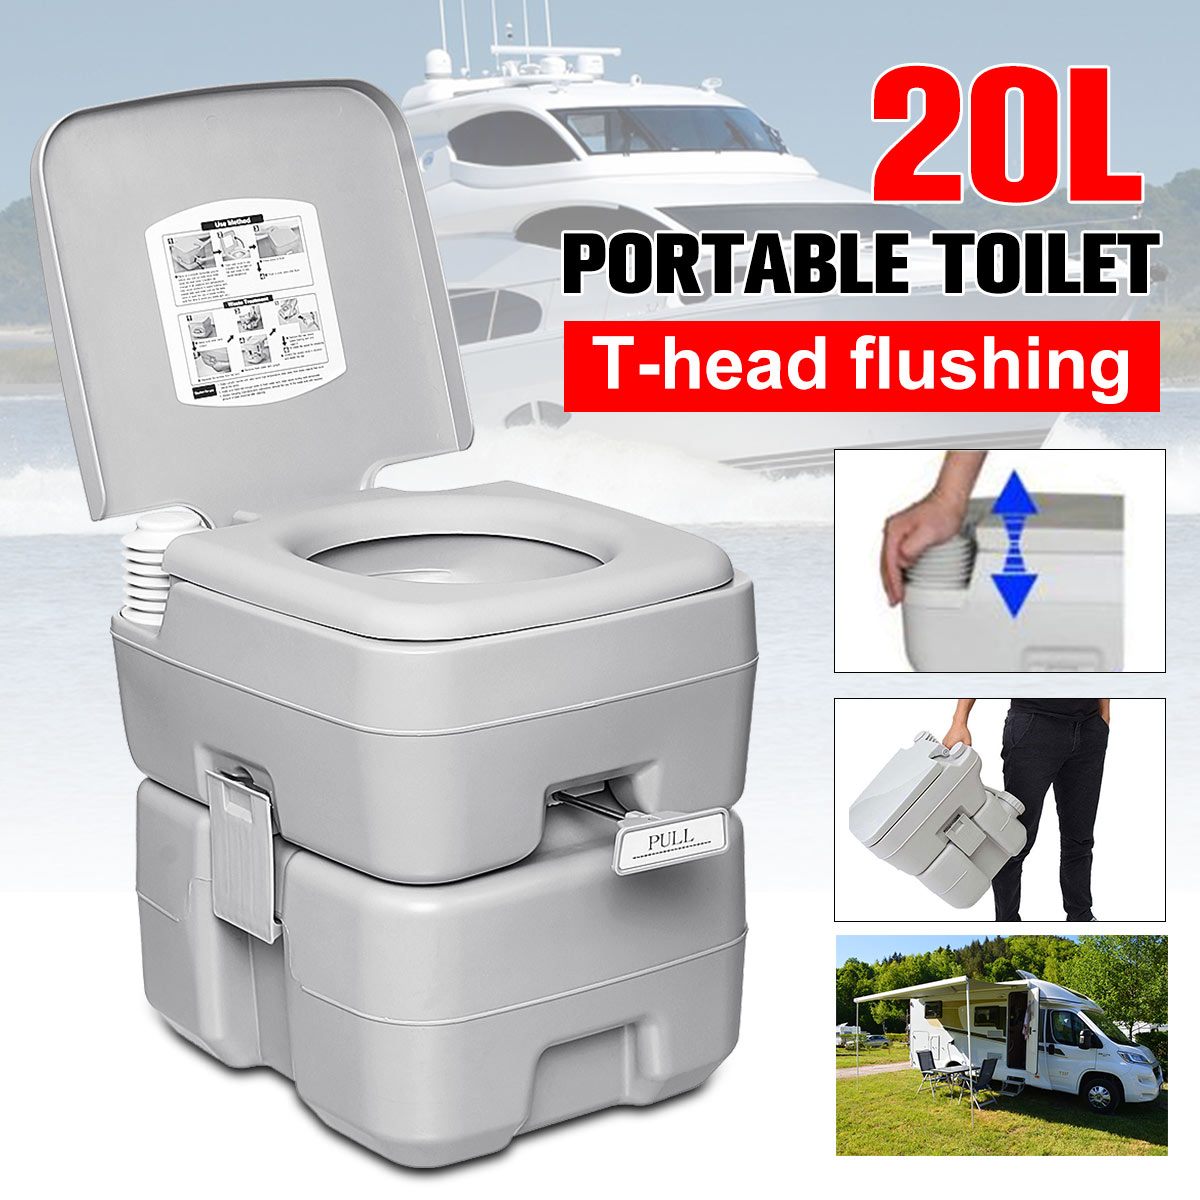 20L Outdoor Portable Camping Toilet Caravan Travel Camp Boating Fishing Flush Toilet